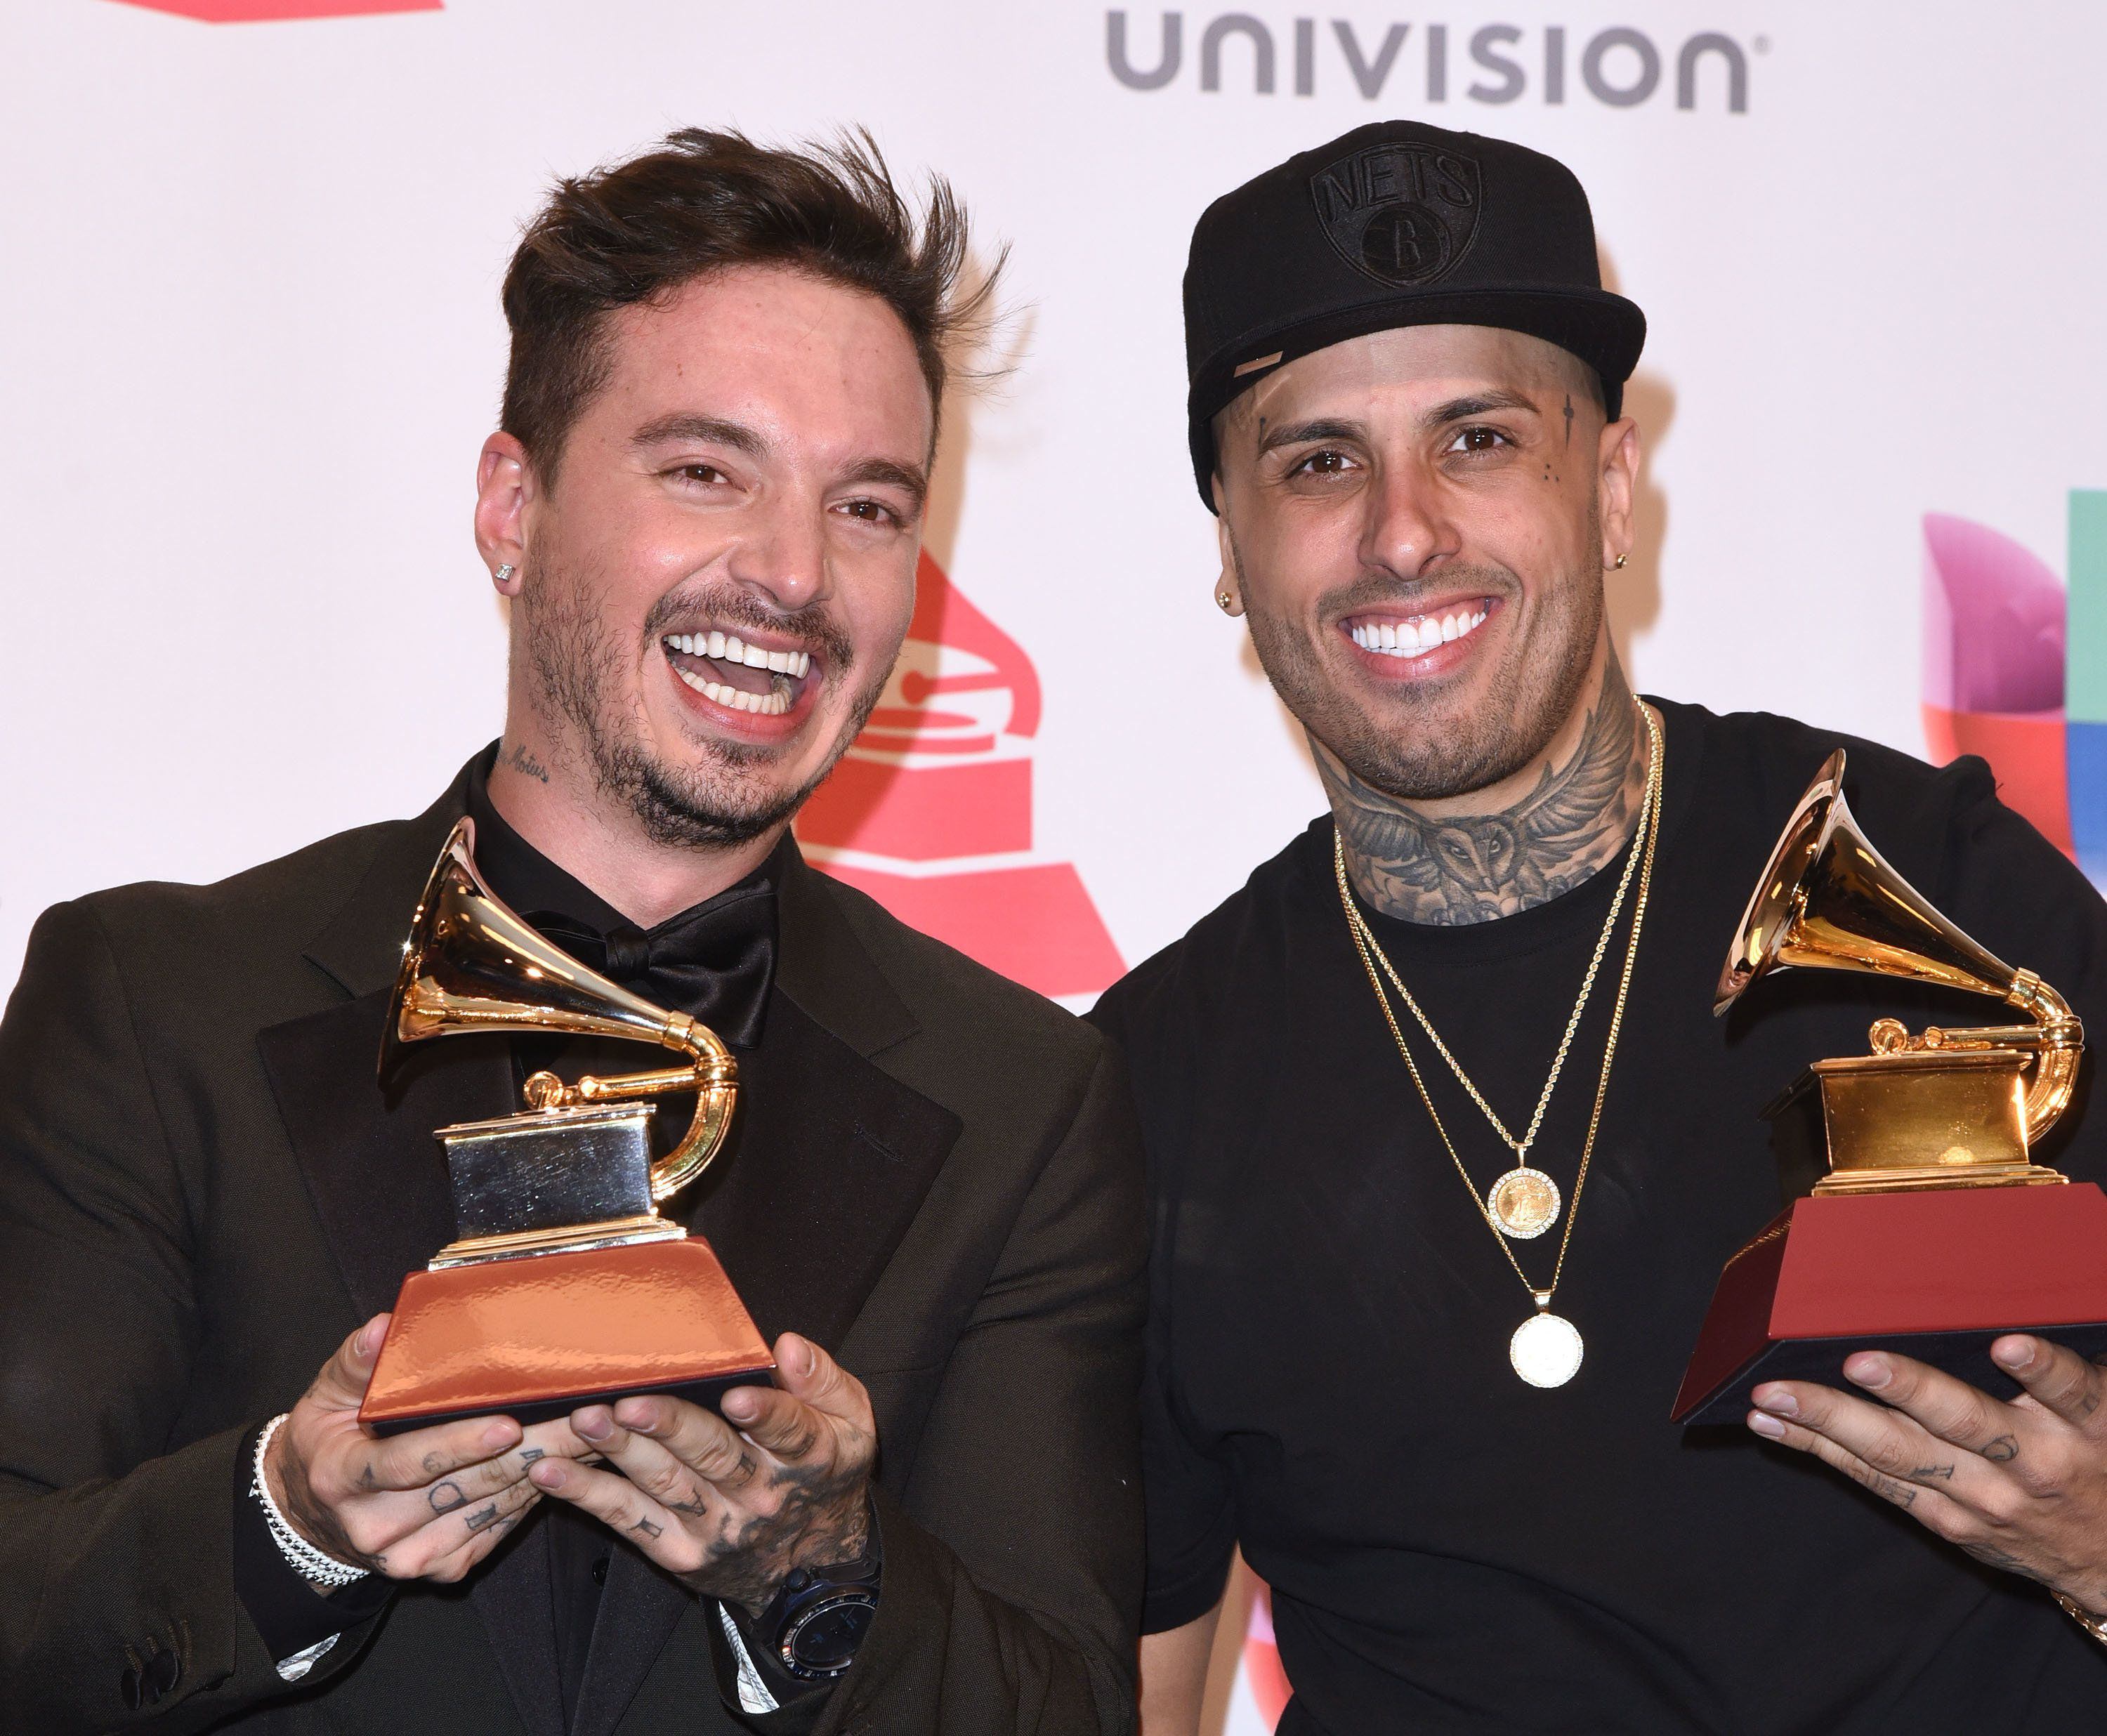 Started from the bottom, now they're... Latin Grammy friends.